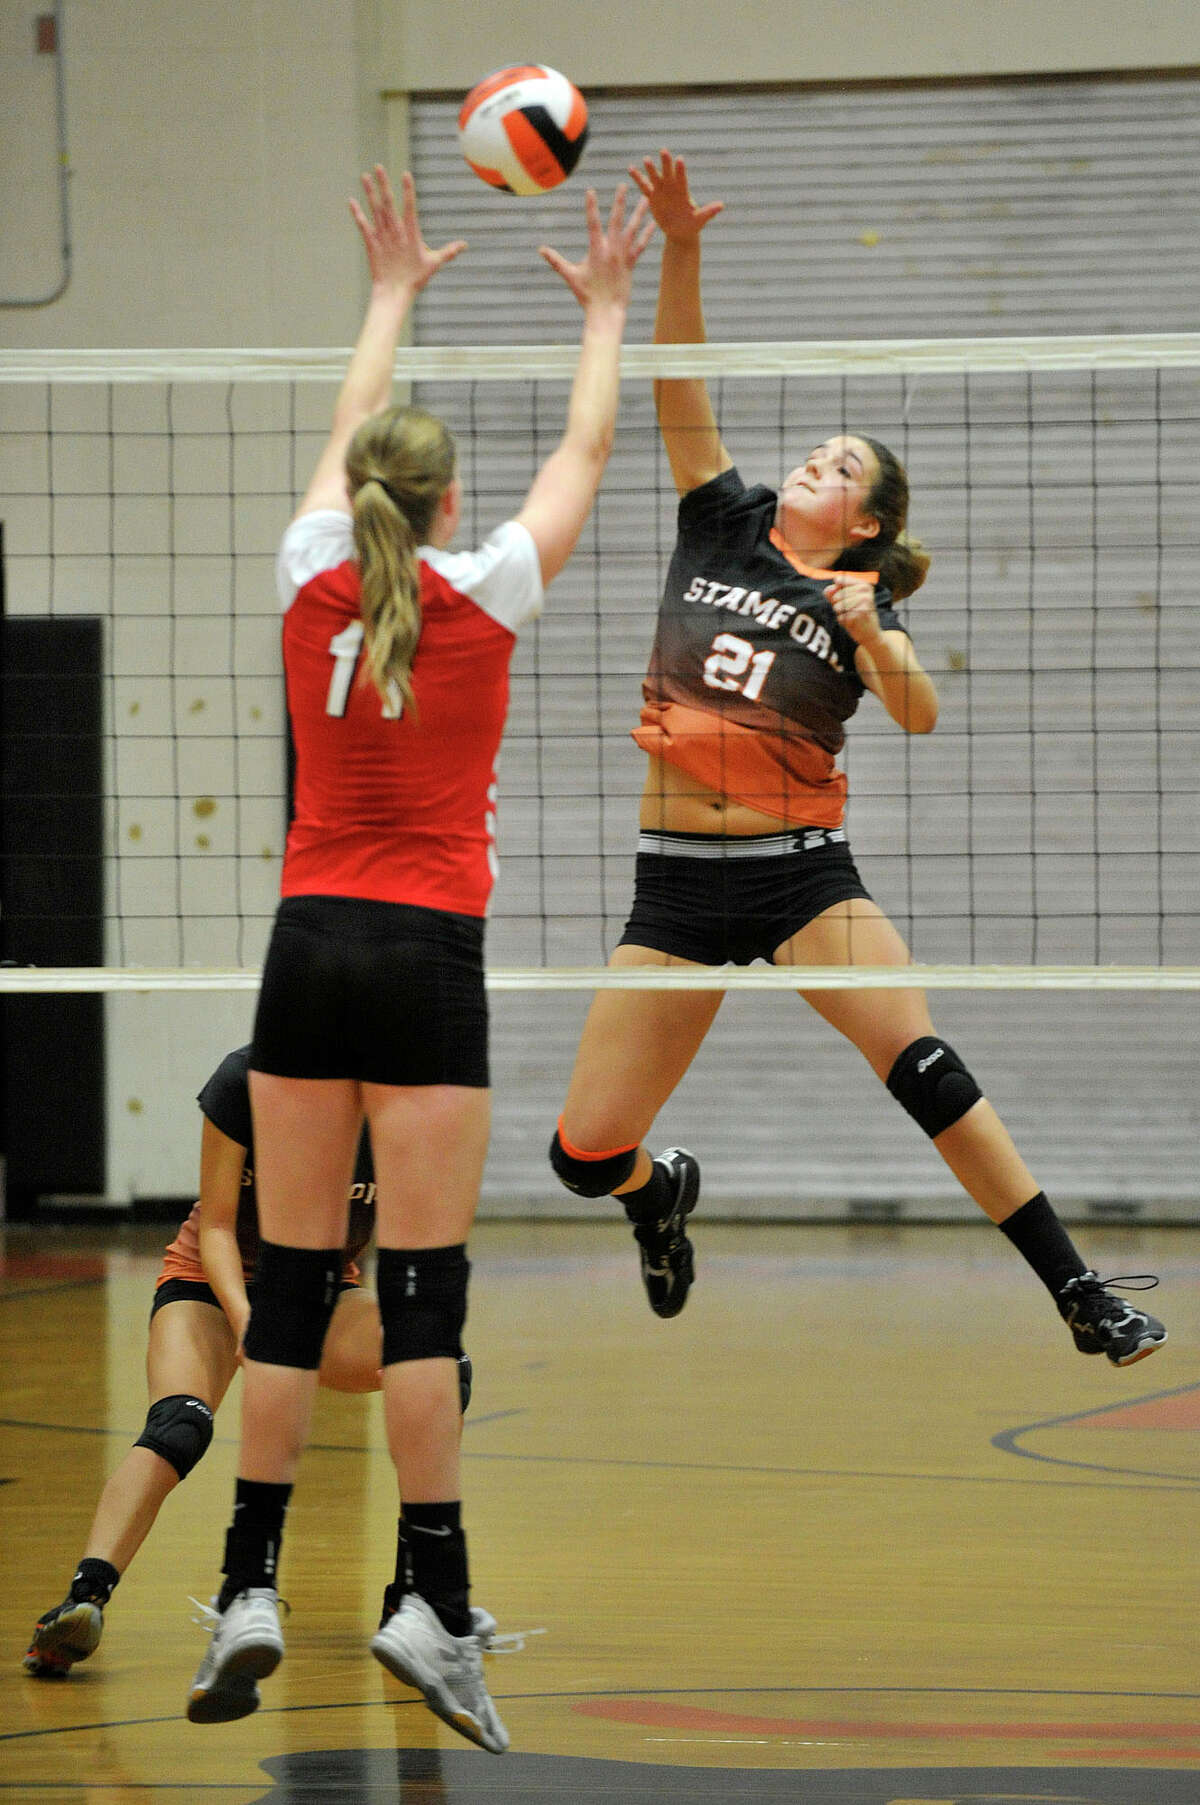 Stamford's Anne Eilertsen spikes the ball while Greenwich's Abigail Wolf attempts to block the shot during their Class LL second round playoff volleyball match at Stamford High School in Stamford, Conn., on Thursday, Nov. 6, 2014. Stamford won, 3-2.